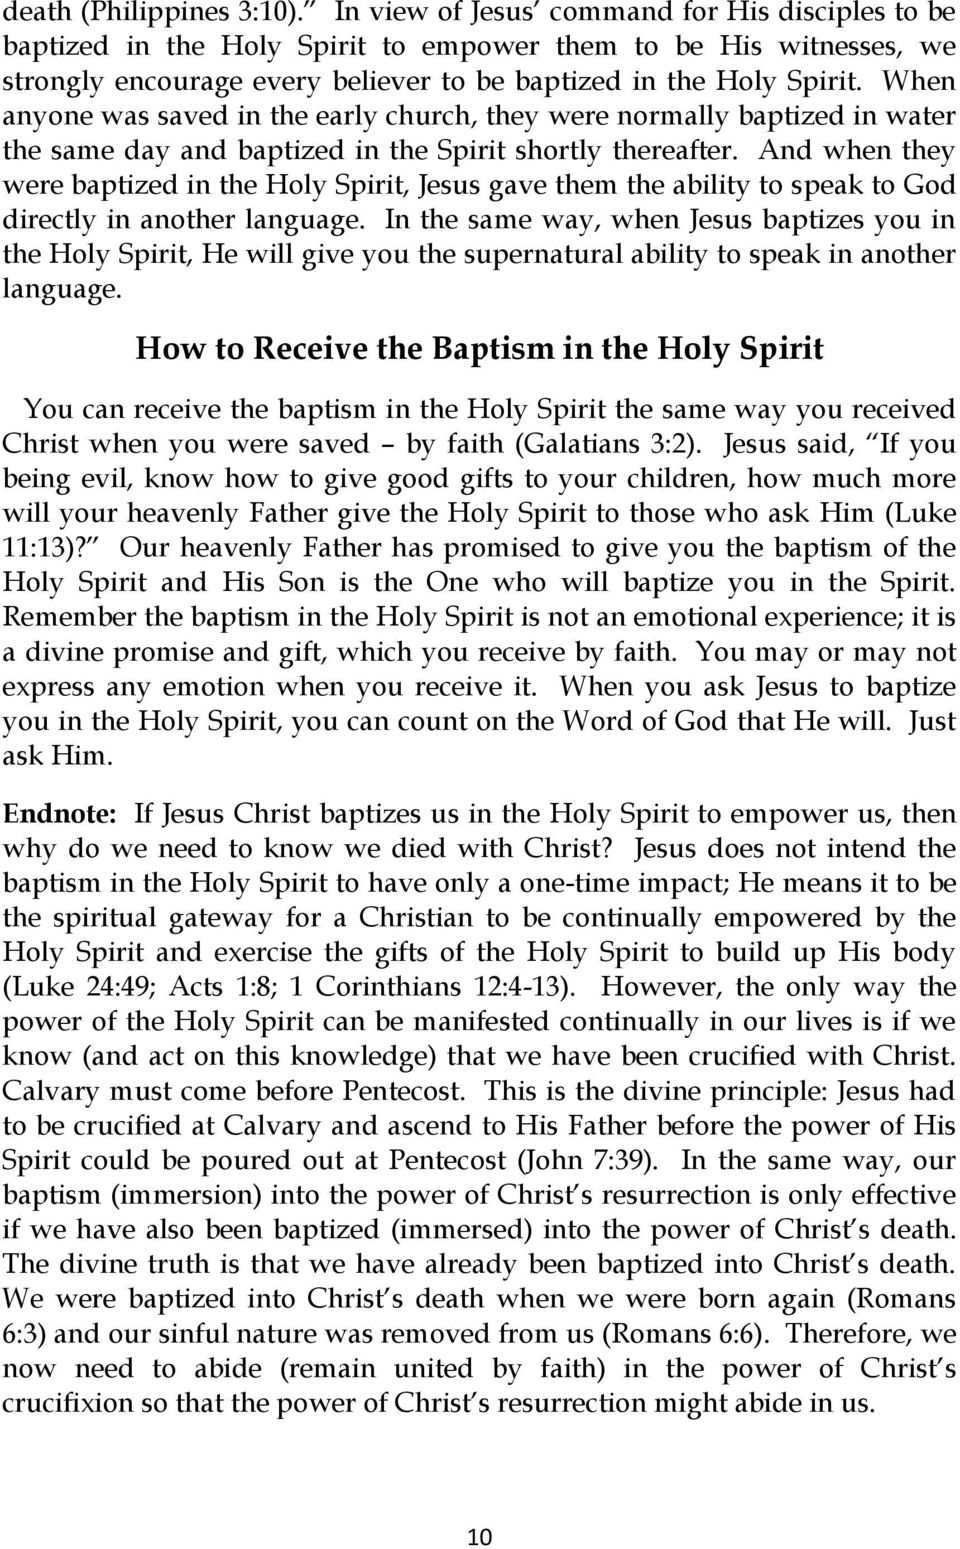 When anyone was saved in the early church, they were normally baptized in water the same day and baptized in the Spirit shortly thereafter.